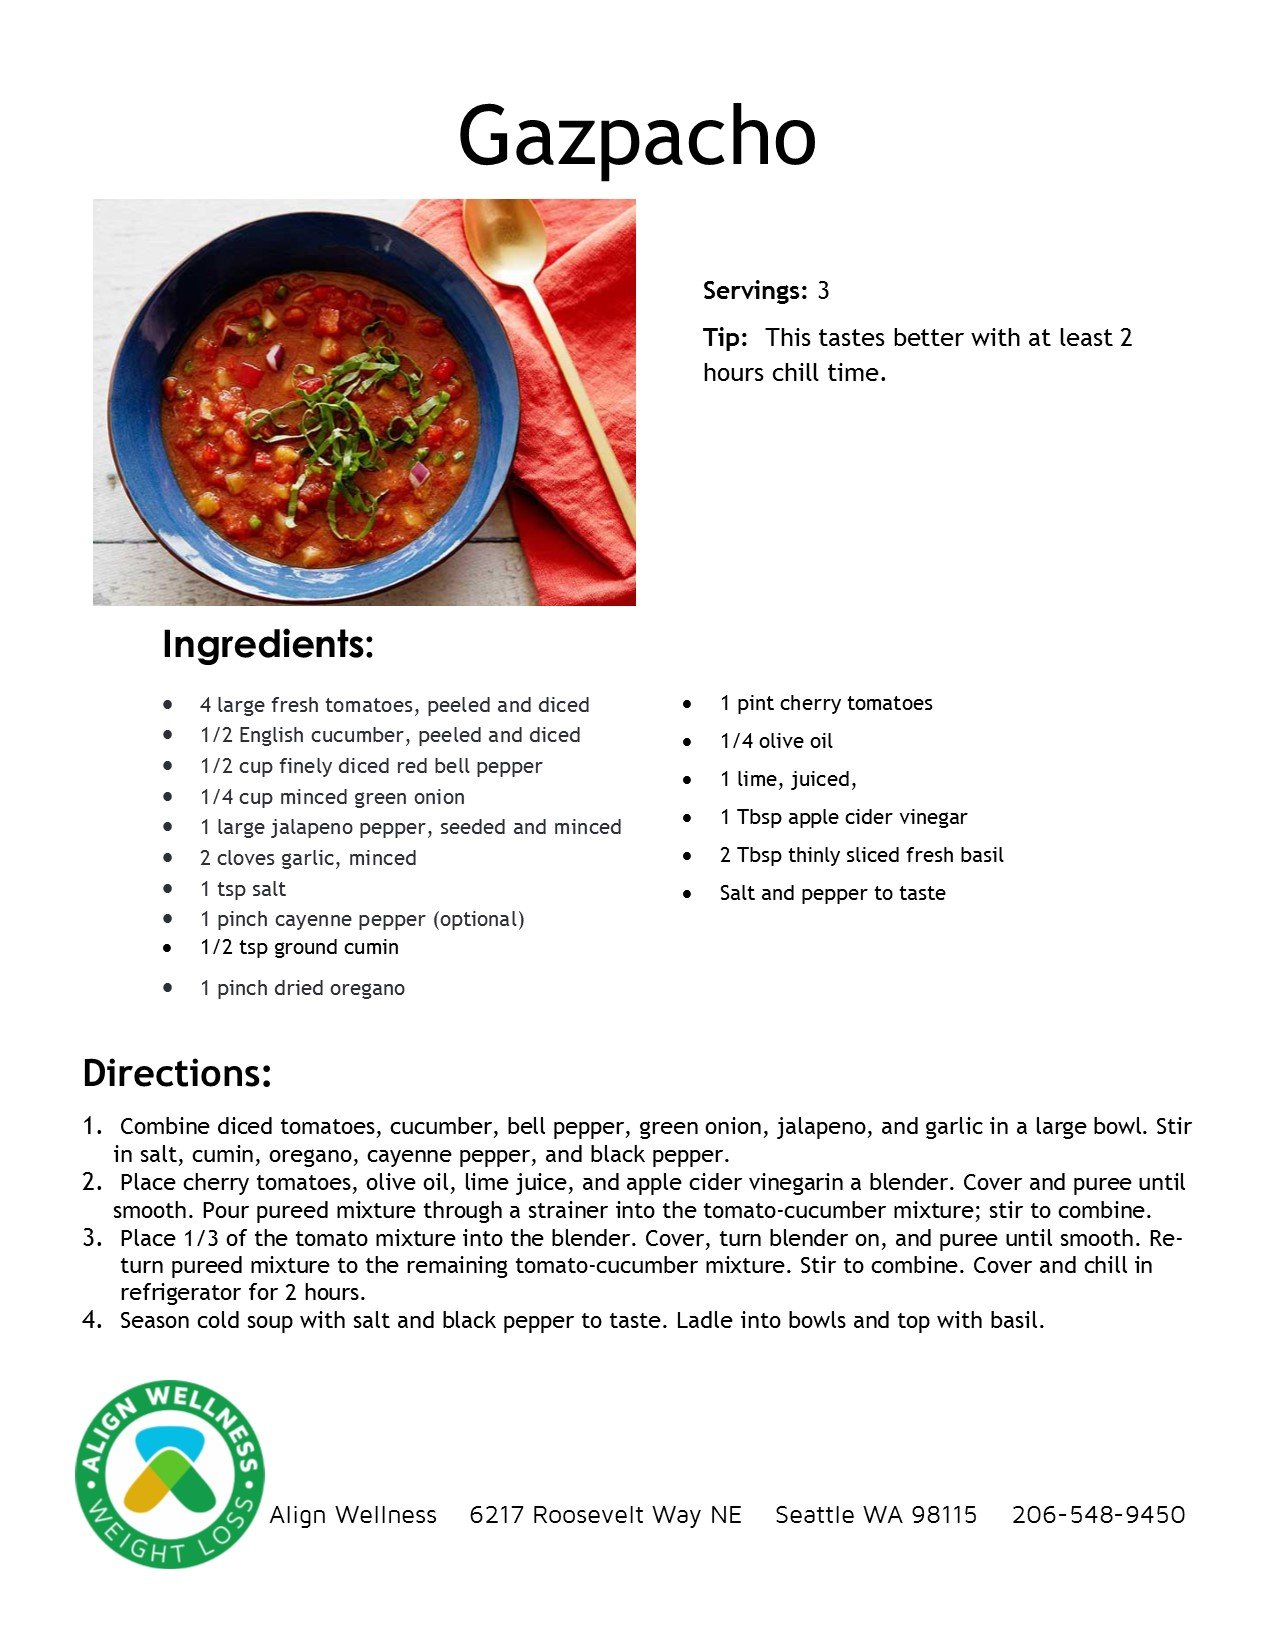 Gazpacho Ideal Protein Recipe